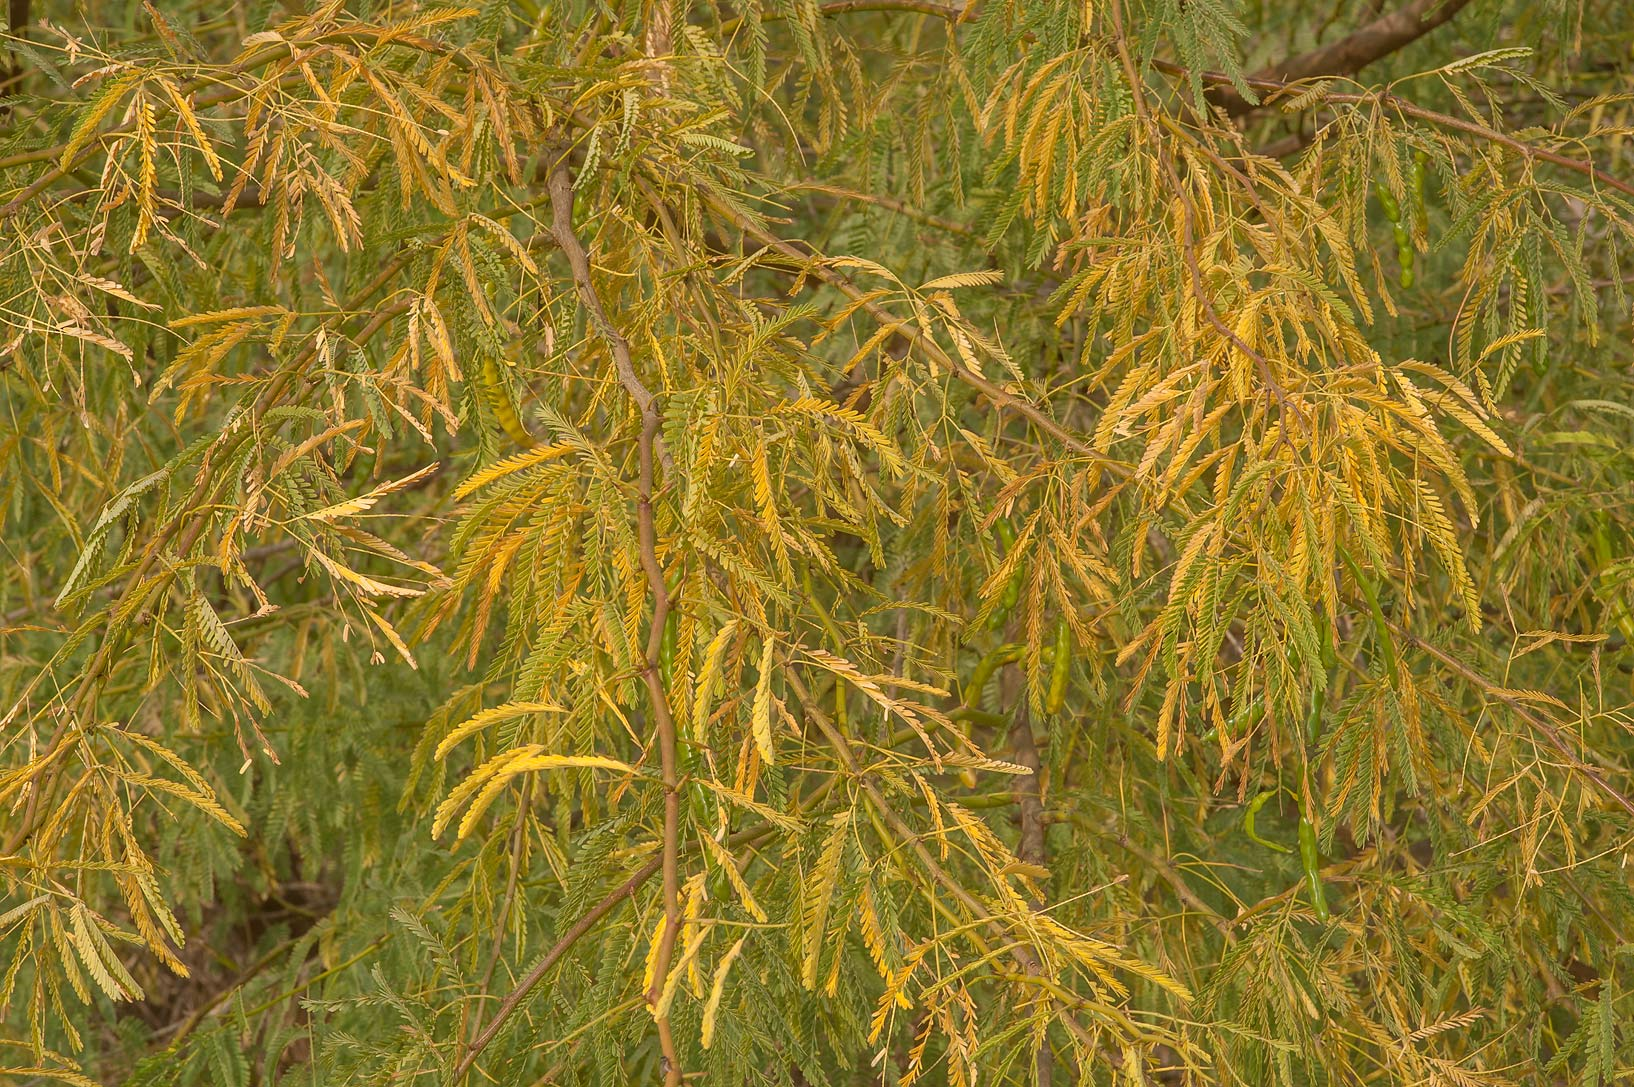 Yellow fall foliage of mesquite (Prosopis...water treatment plant. Al Khor, Qatar